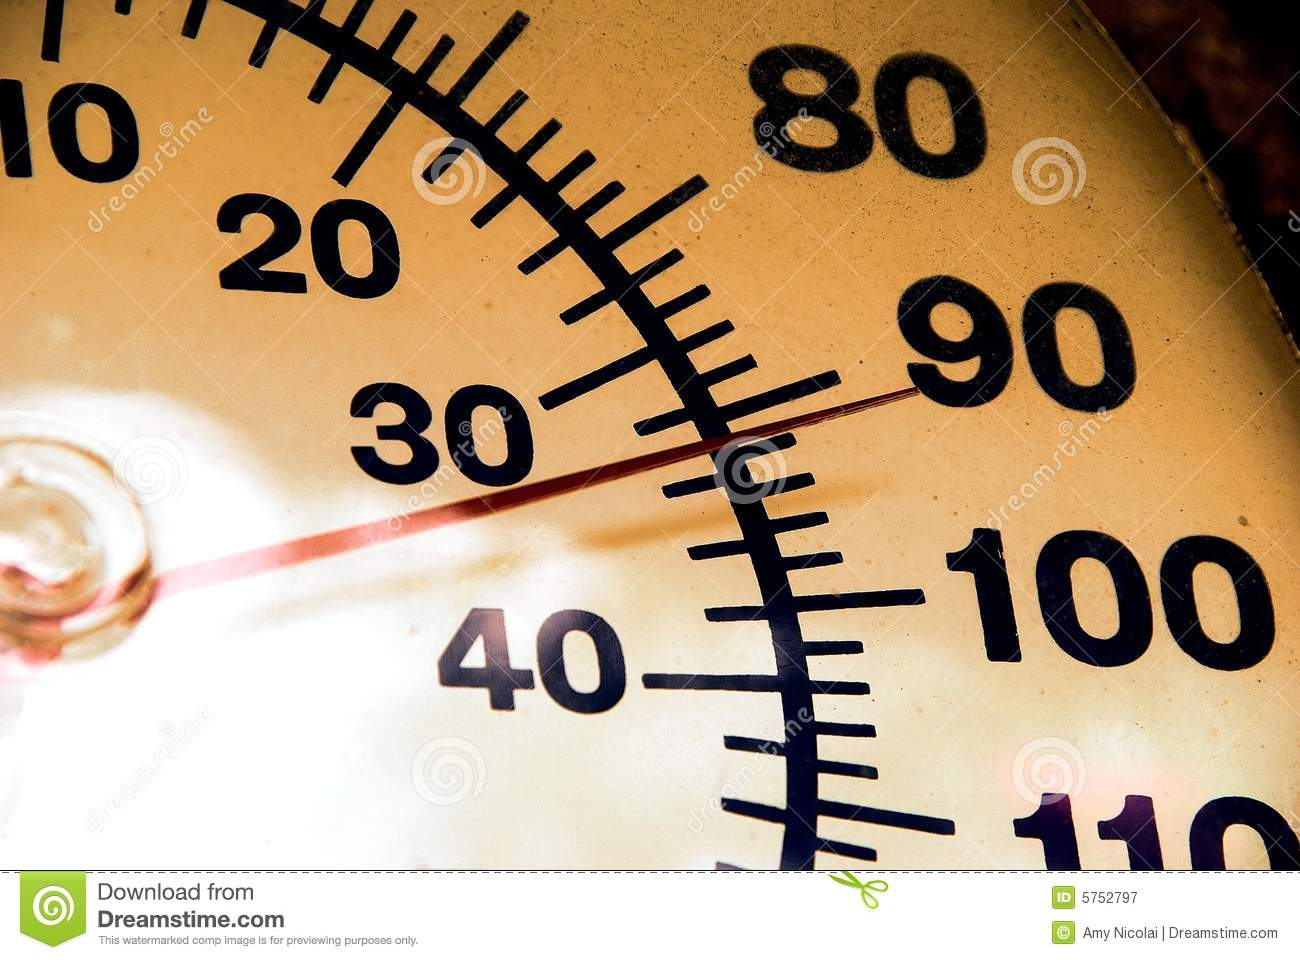 Thermometer at 92